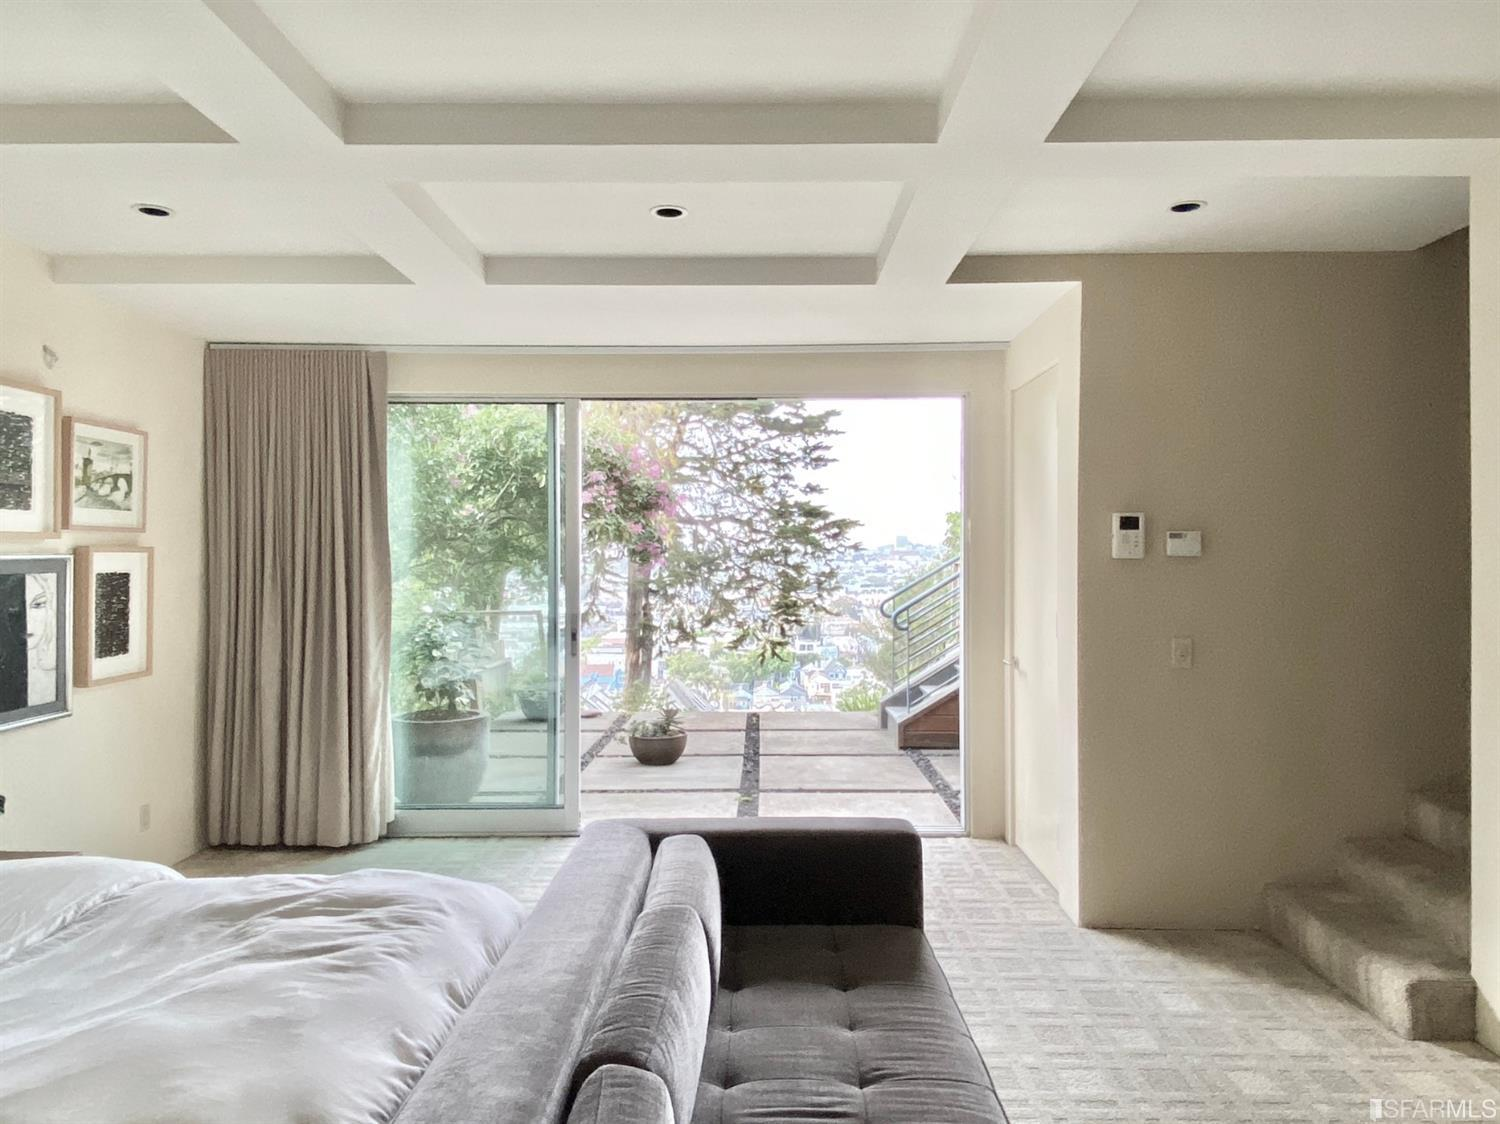 Garden level exceptionally spacious bedroom or media room with a half bath with stunning ceiling detail and floor to ceiling Fle